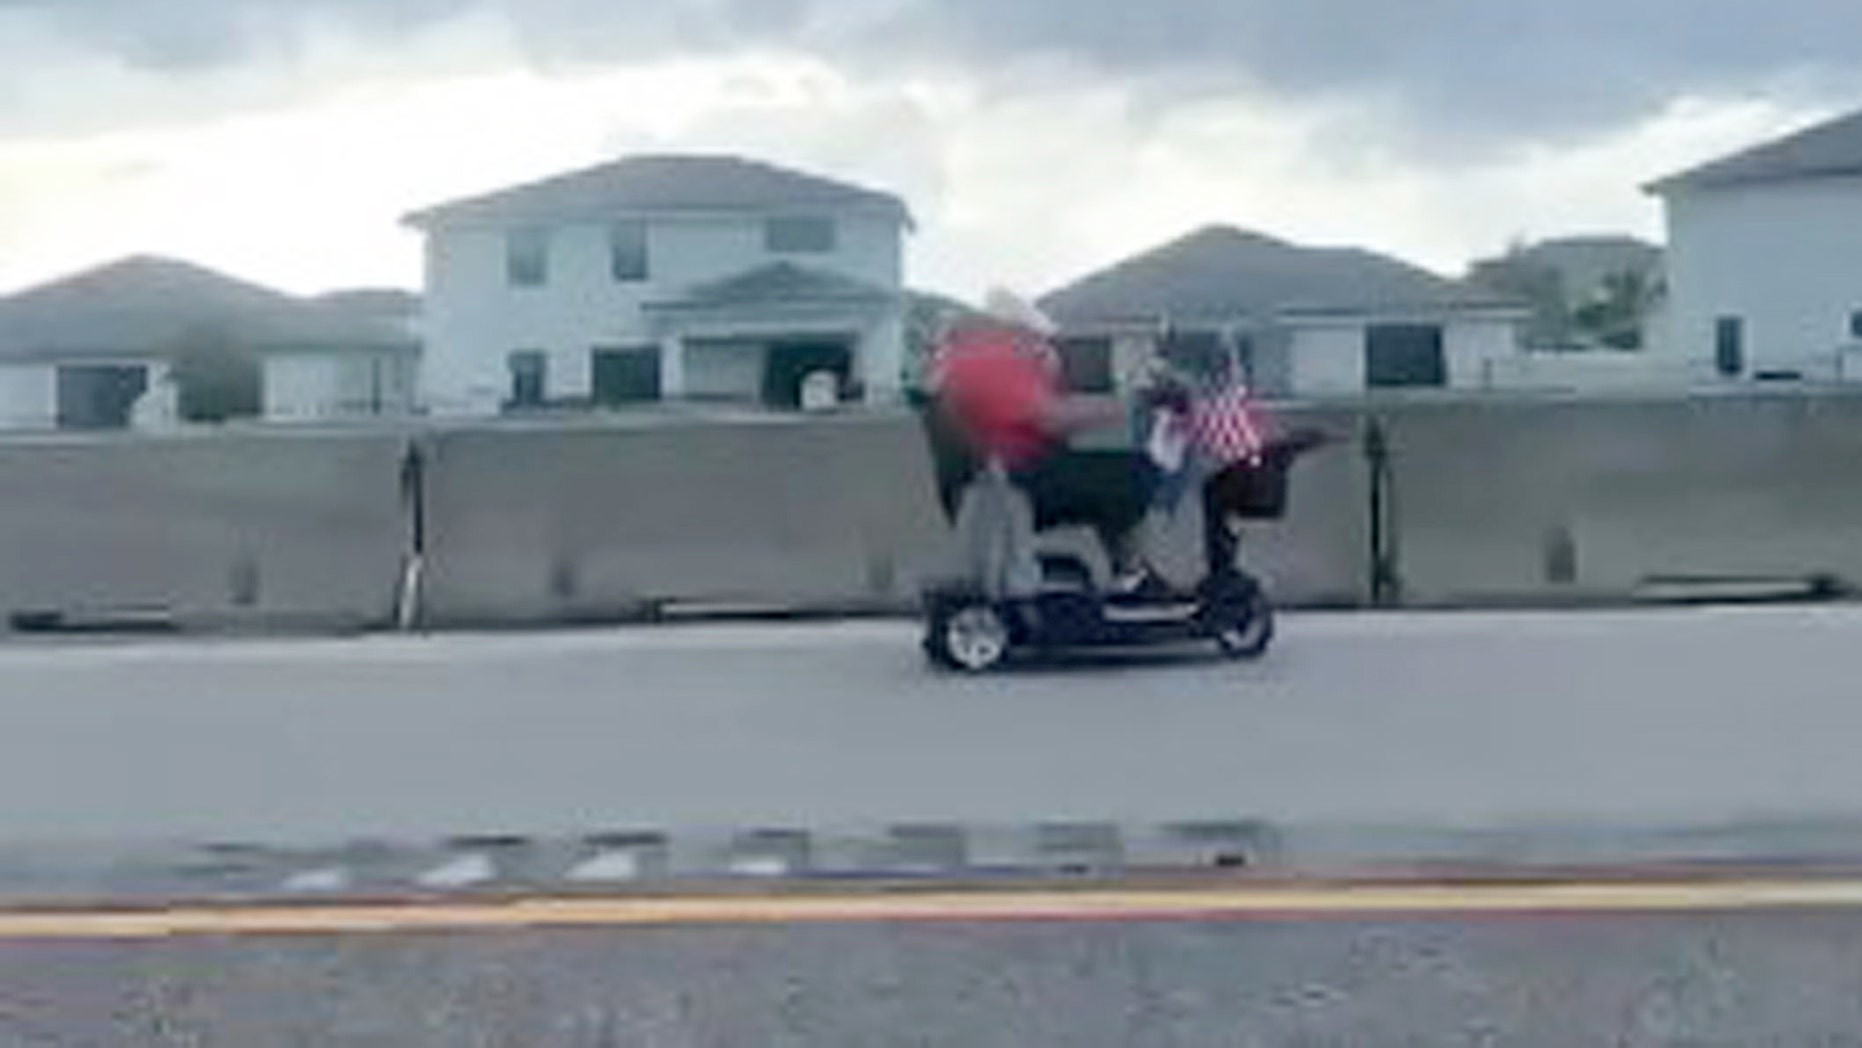 Florida State Troopers seen chasing elderly man riding scooter on Turnpike in viral video